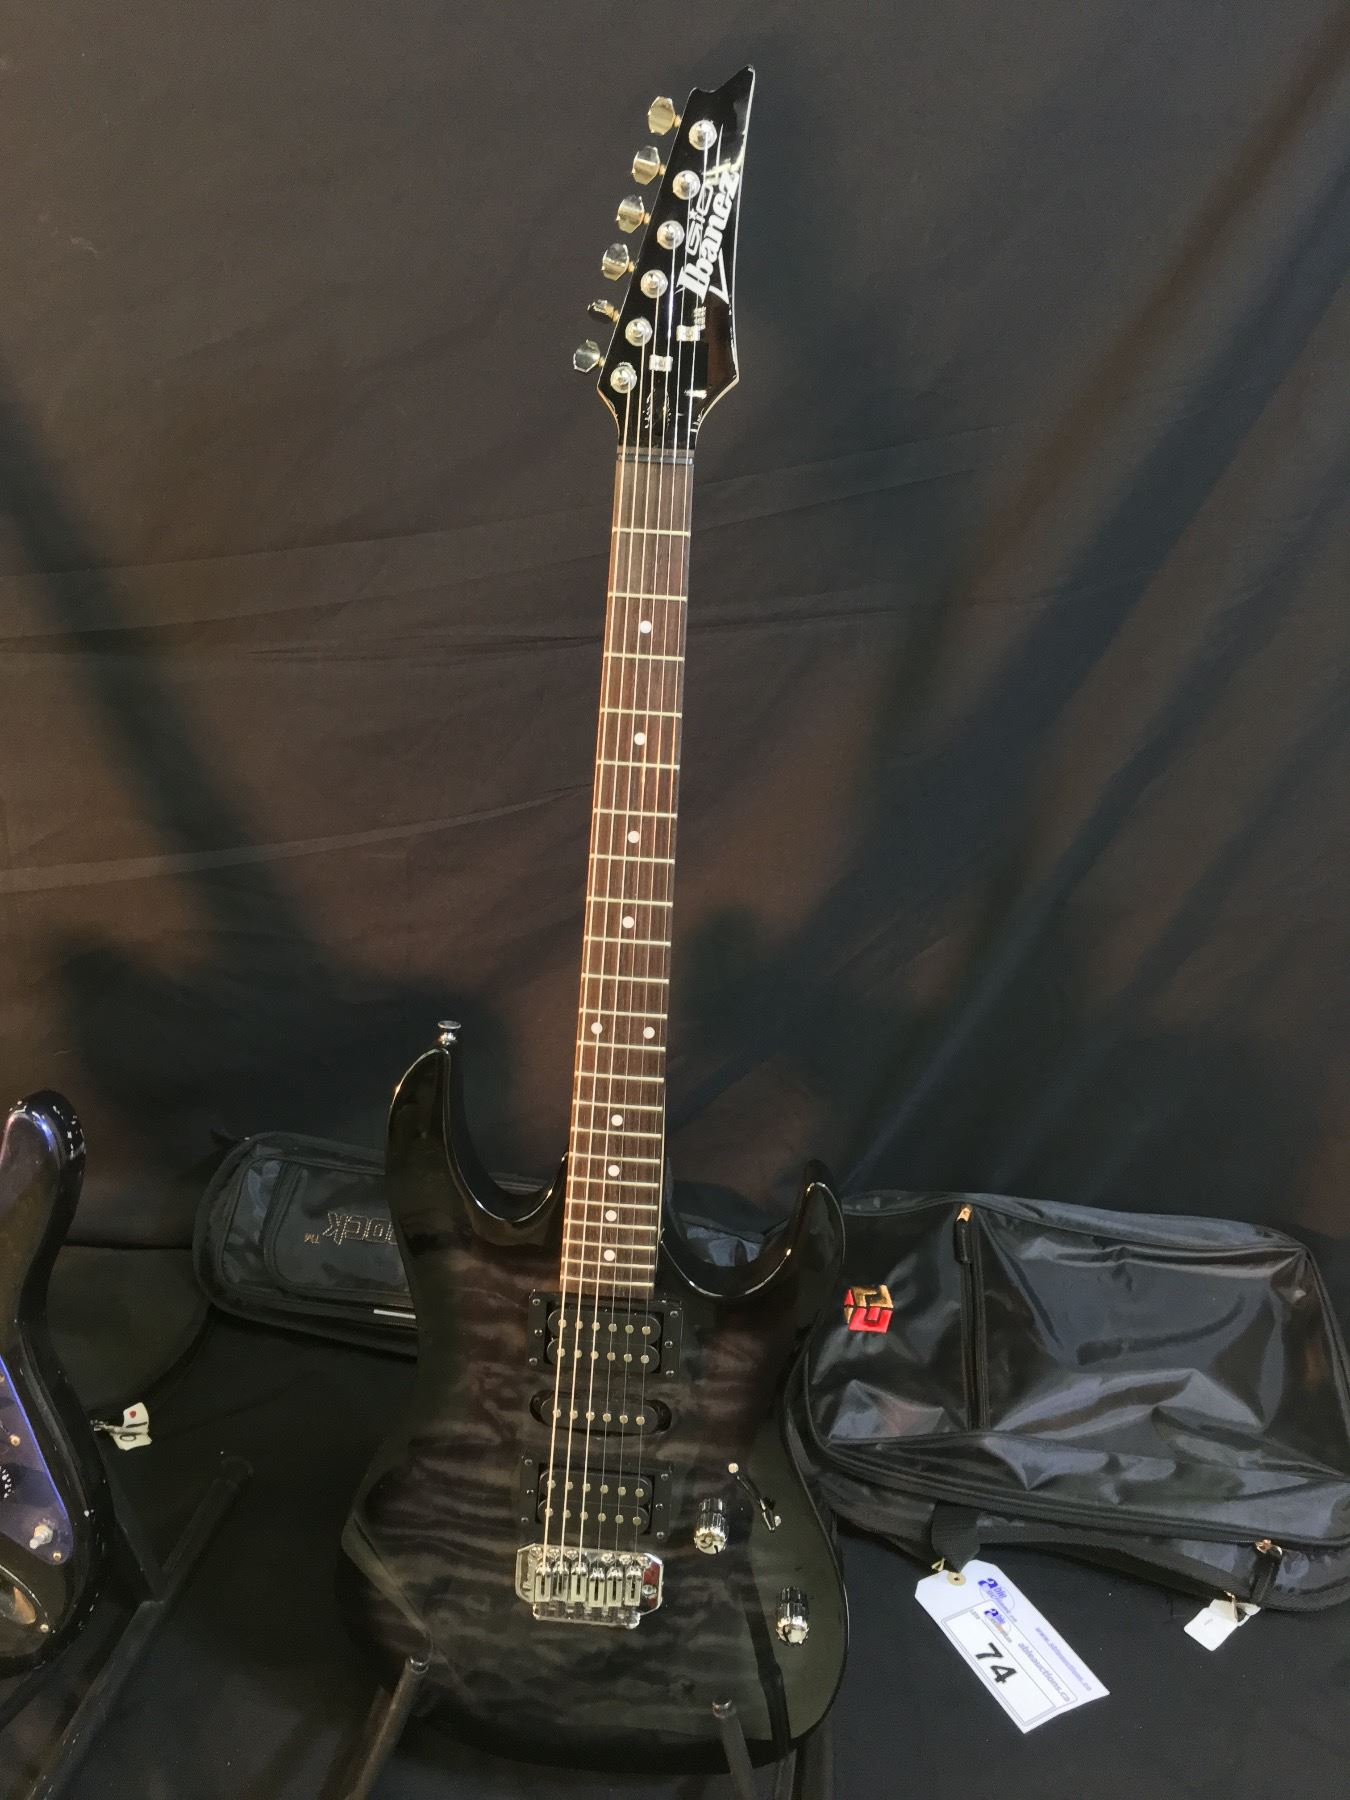 Cool Lifan 125cc Engine Wiring Tall Bulldog Wiring Clean Wire 5 Way Switch Search Bbb Young How To Install Bulldog Remote Start GrayWiring Diagram For Furnace 3 GUITARS: IBANEZ GIO STRAT STYLE GUITAR WITH TWO HUMBUCKER ..